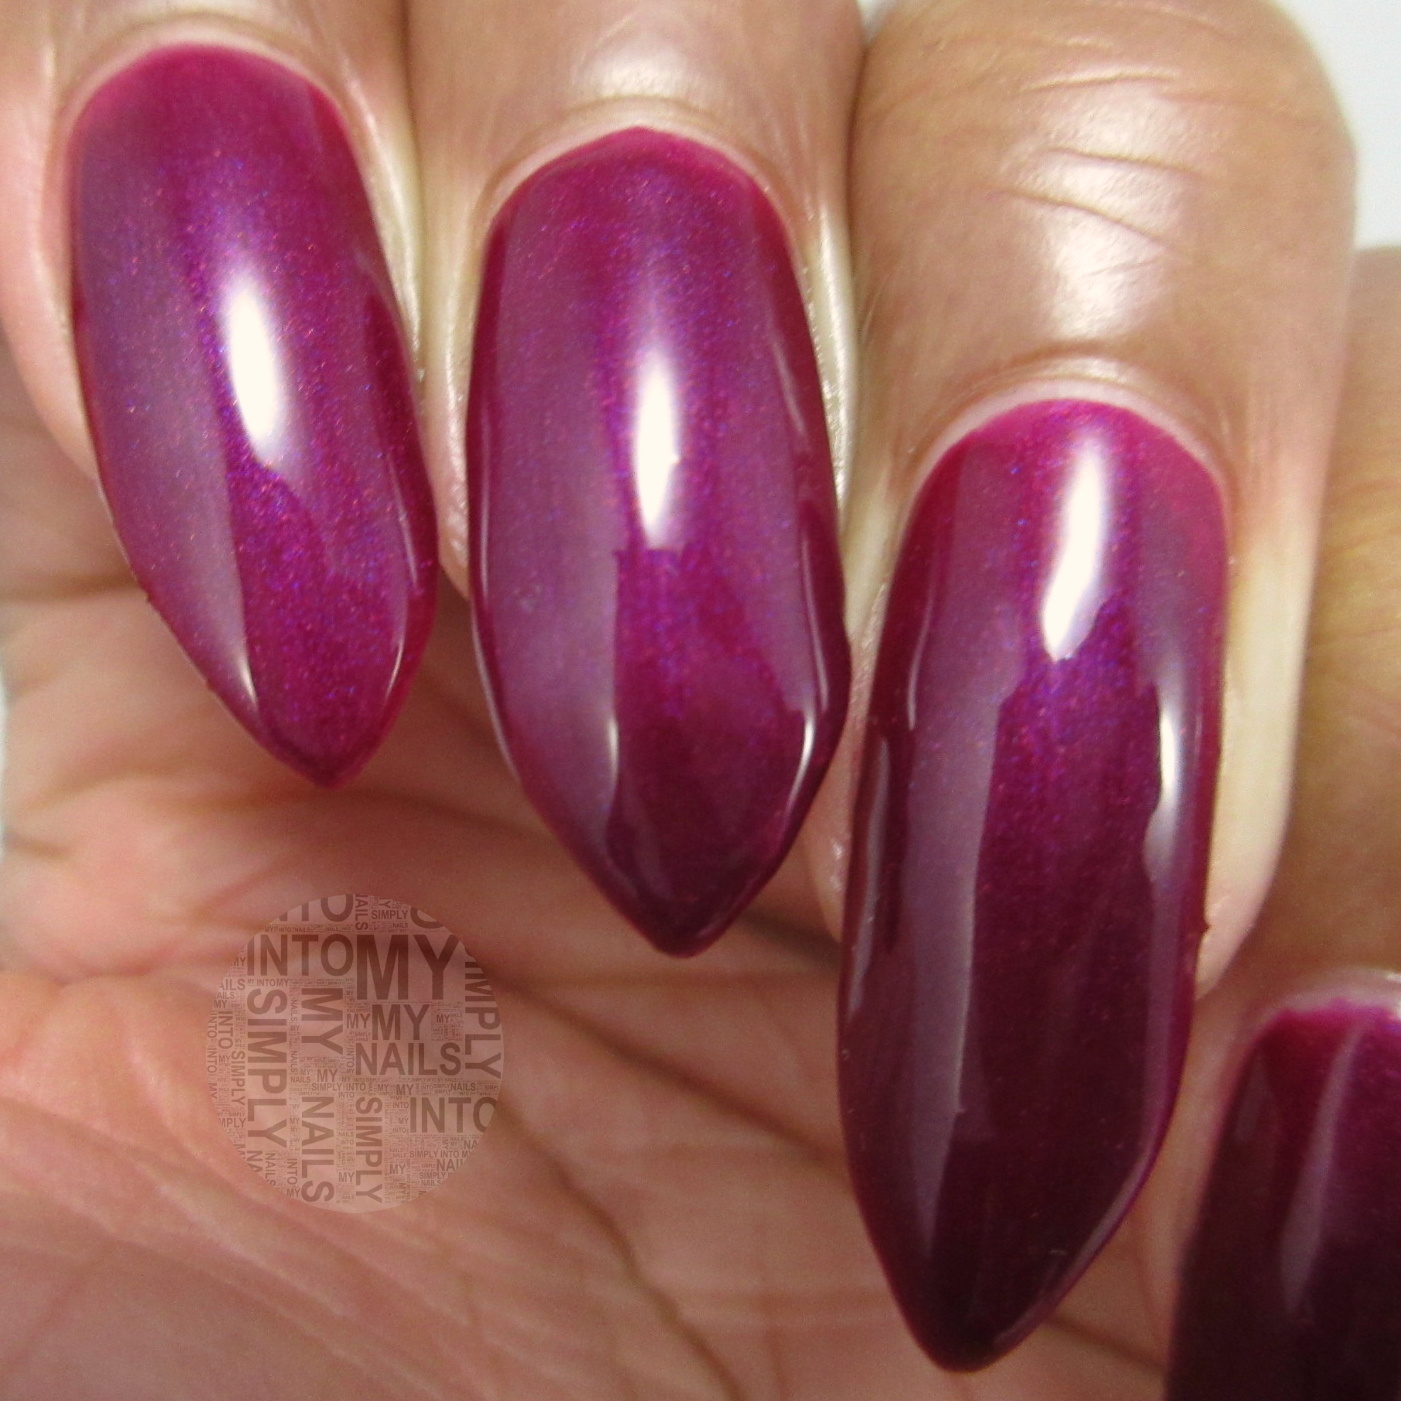 Mini Manicures ~ OPI Gelcolor Kiss Me - Or Elf! | Simply Into My NAILS